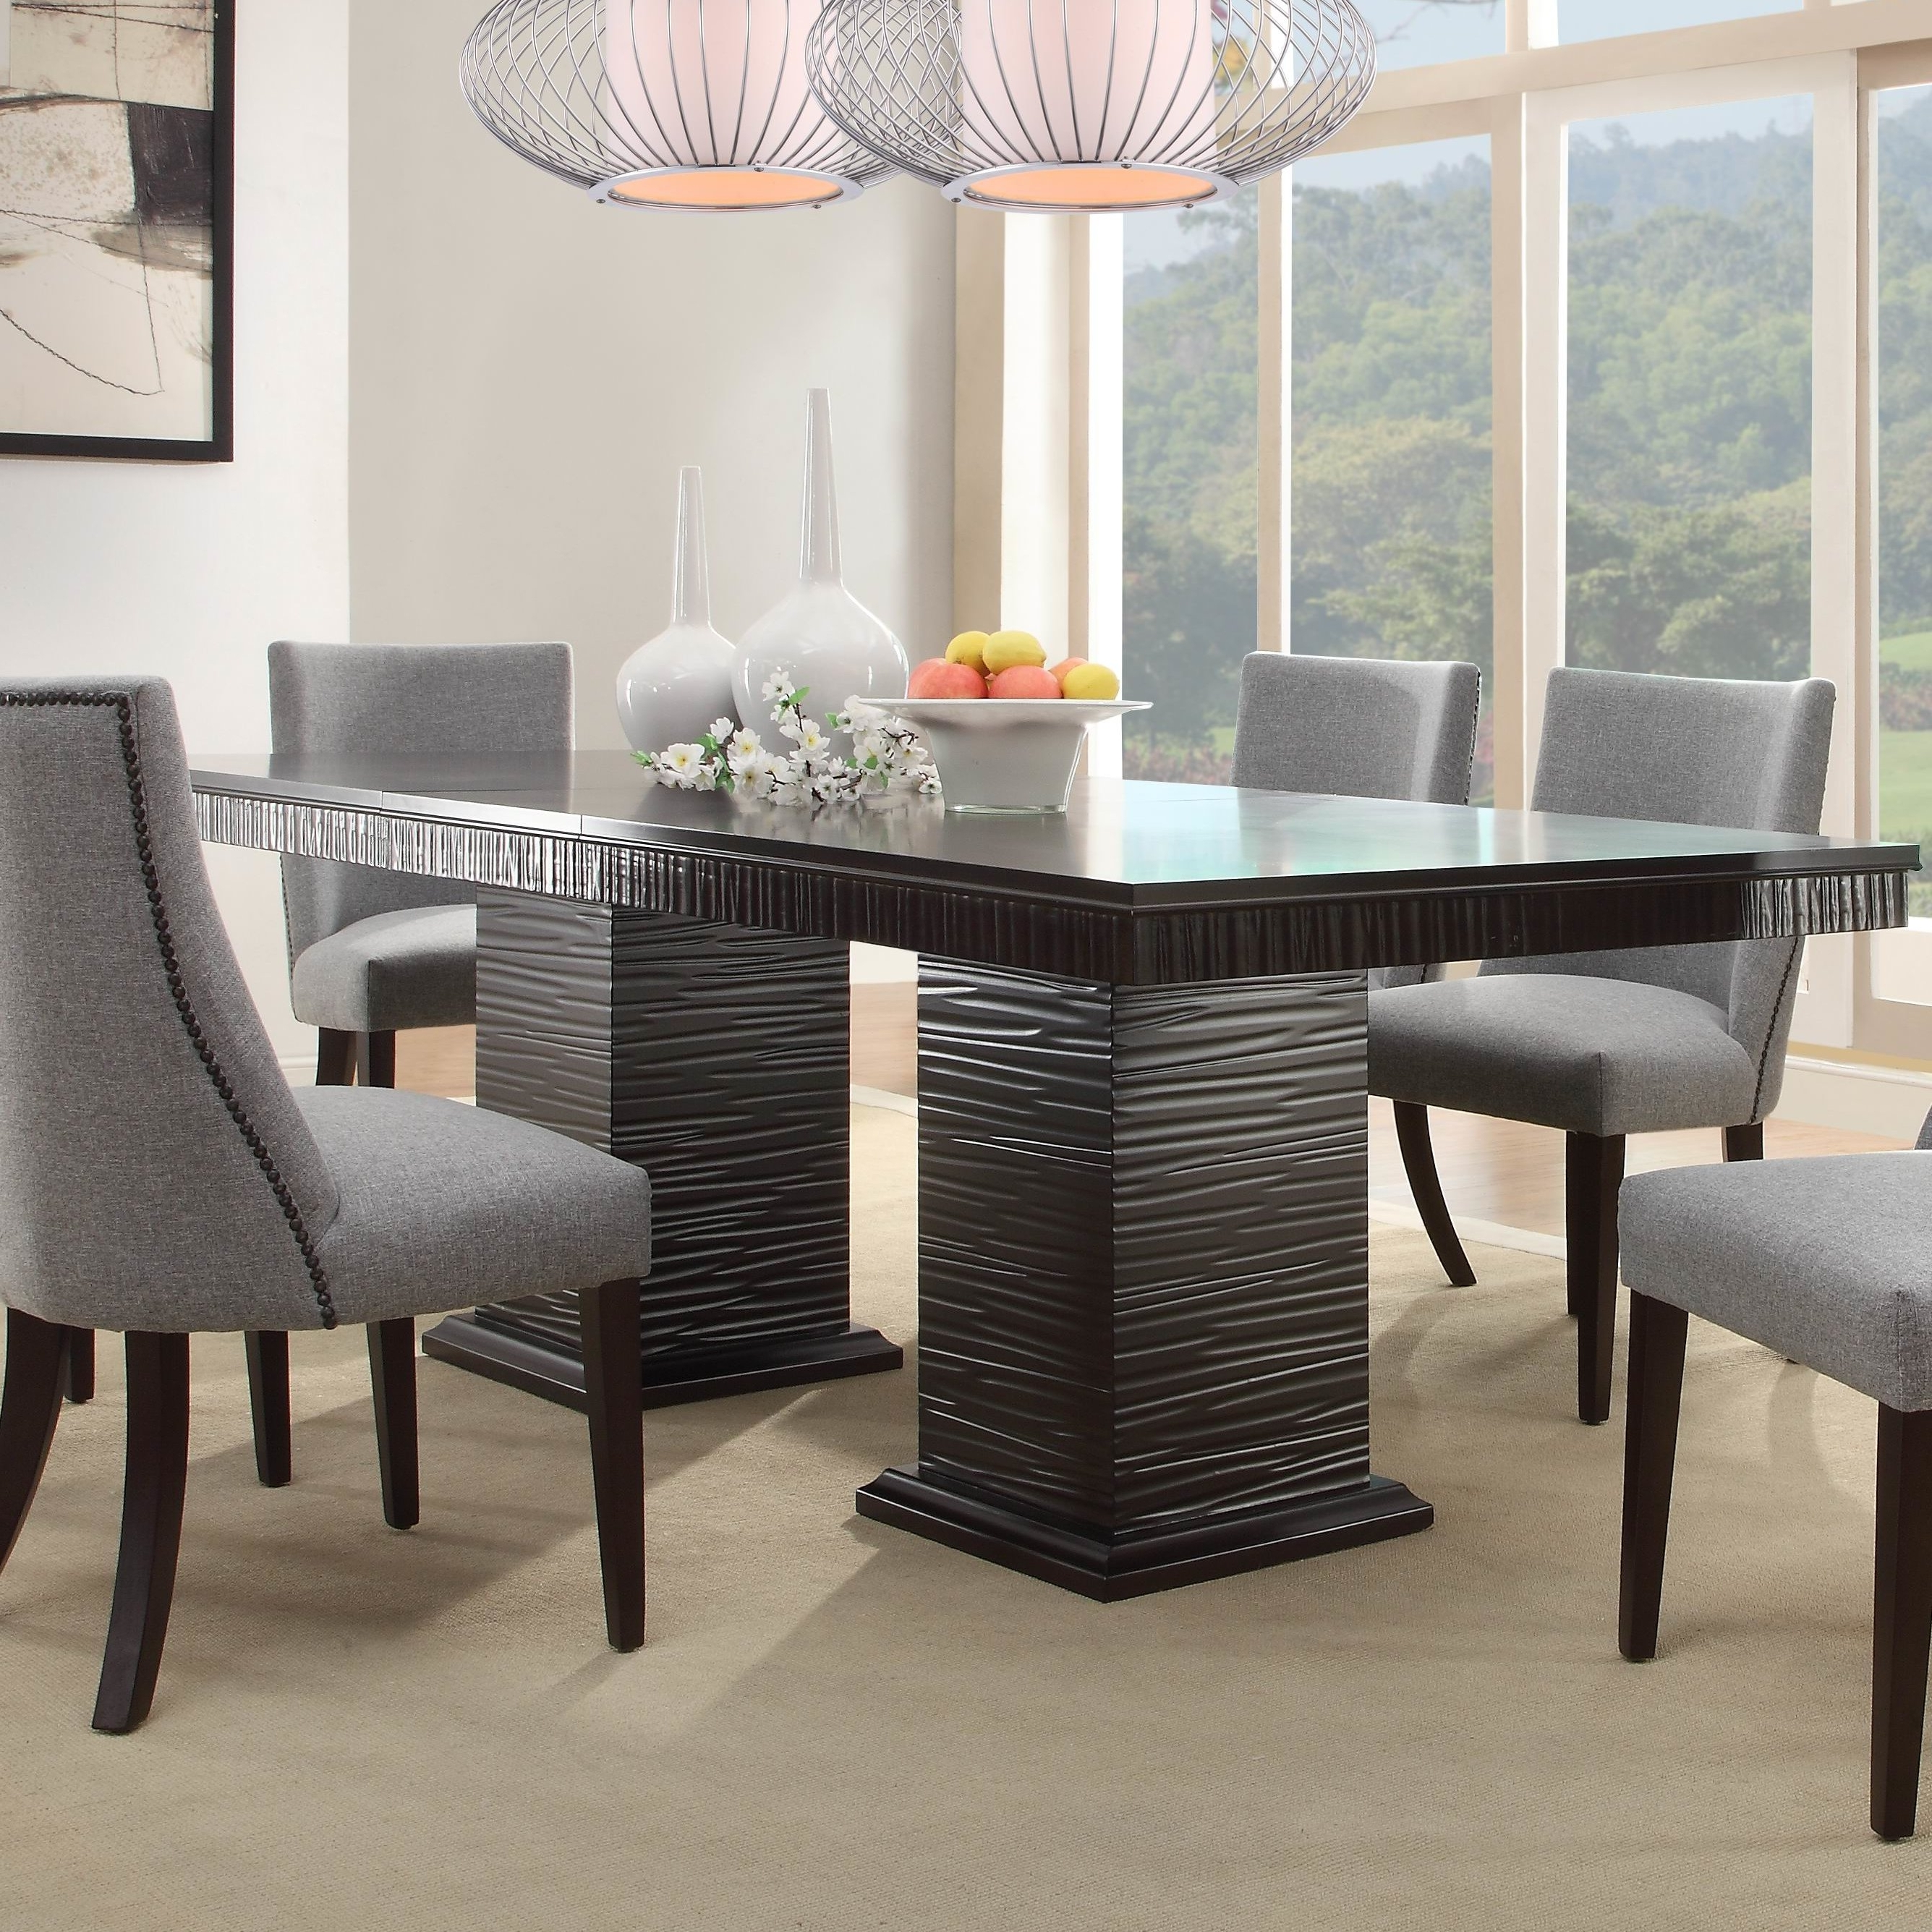 2017 Cadogan Extendable Dining Table With Regard To Extendable Dining Sets (Gallery 12 of 25)